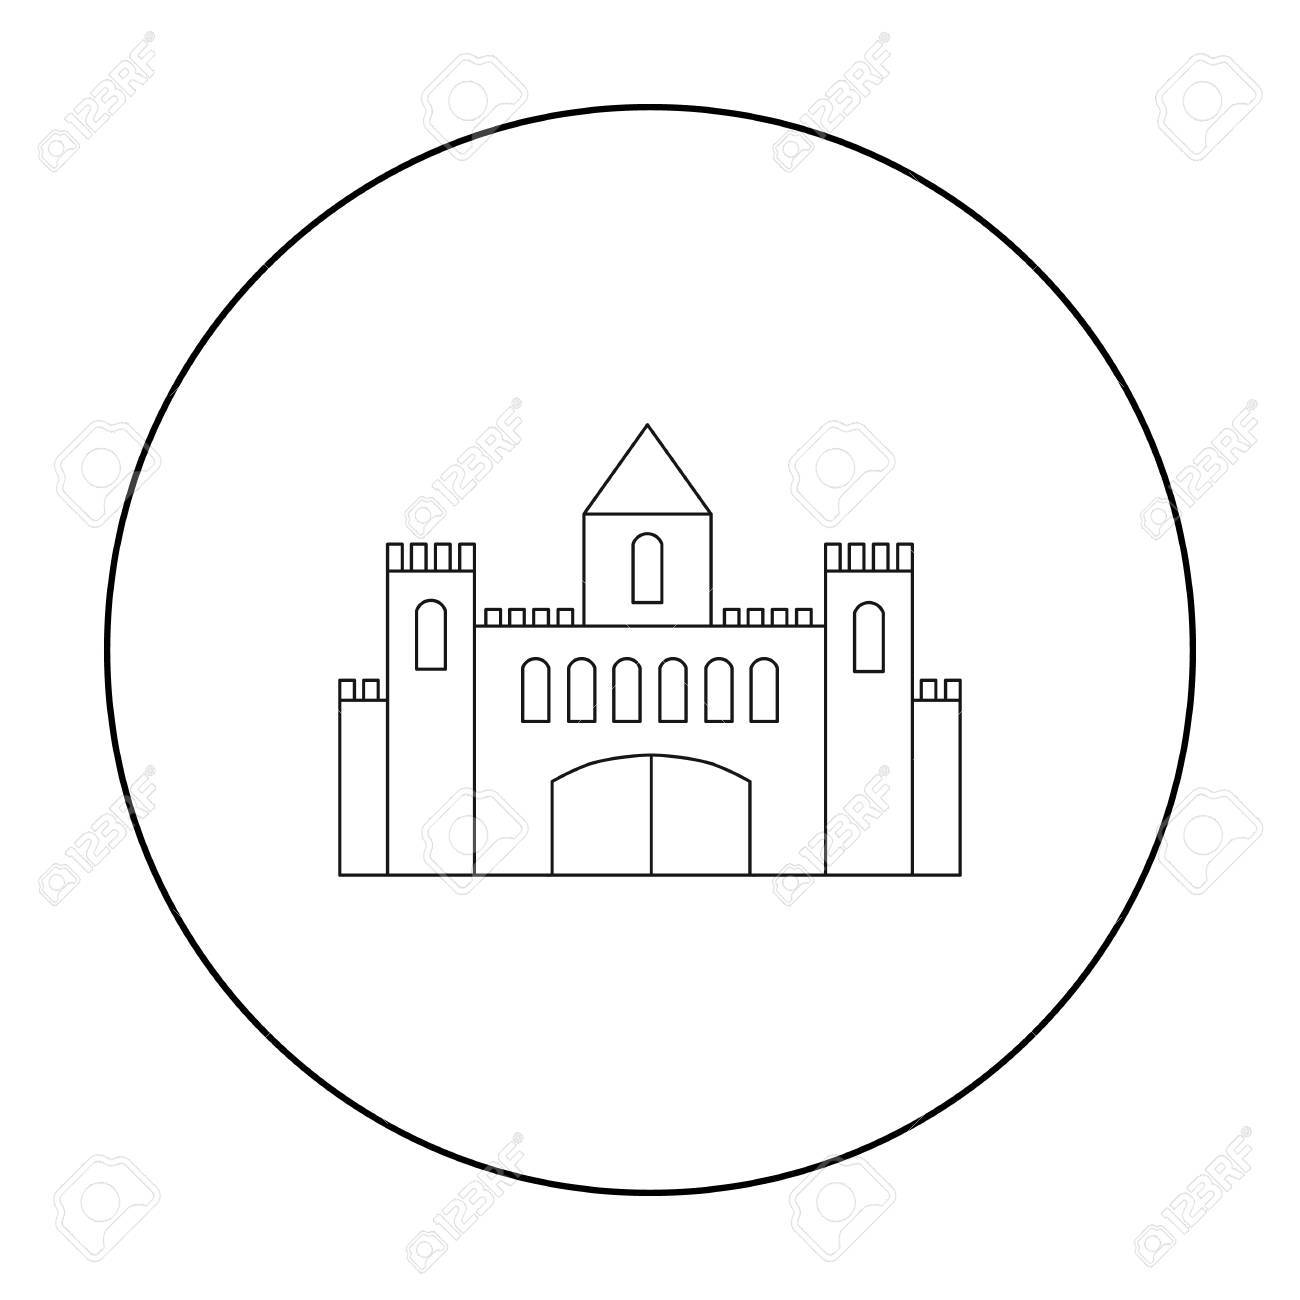 Castle Icon Outline Single Building From The Big City Infrastructure Stock Vector